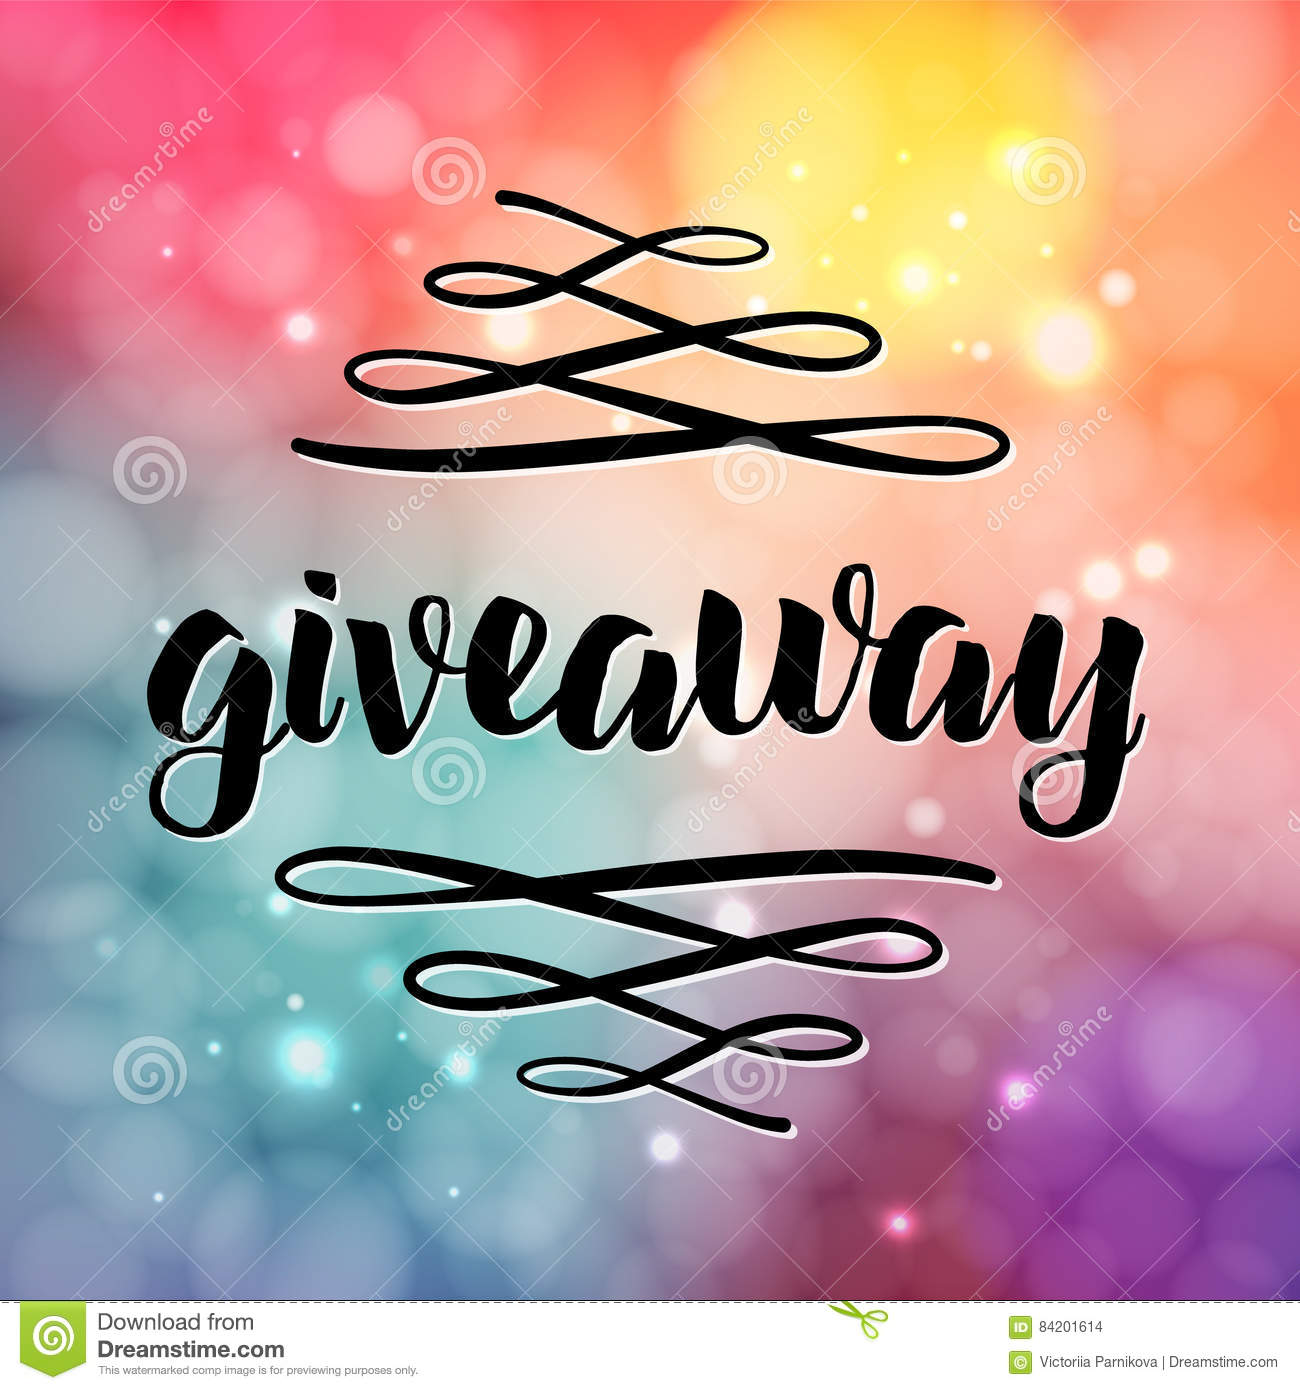 Giveaway Lettering For Promotion In Social Media With Swashes On